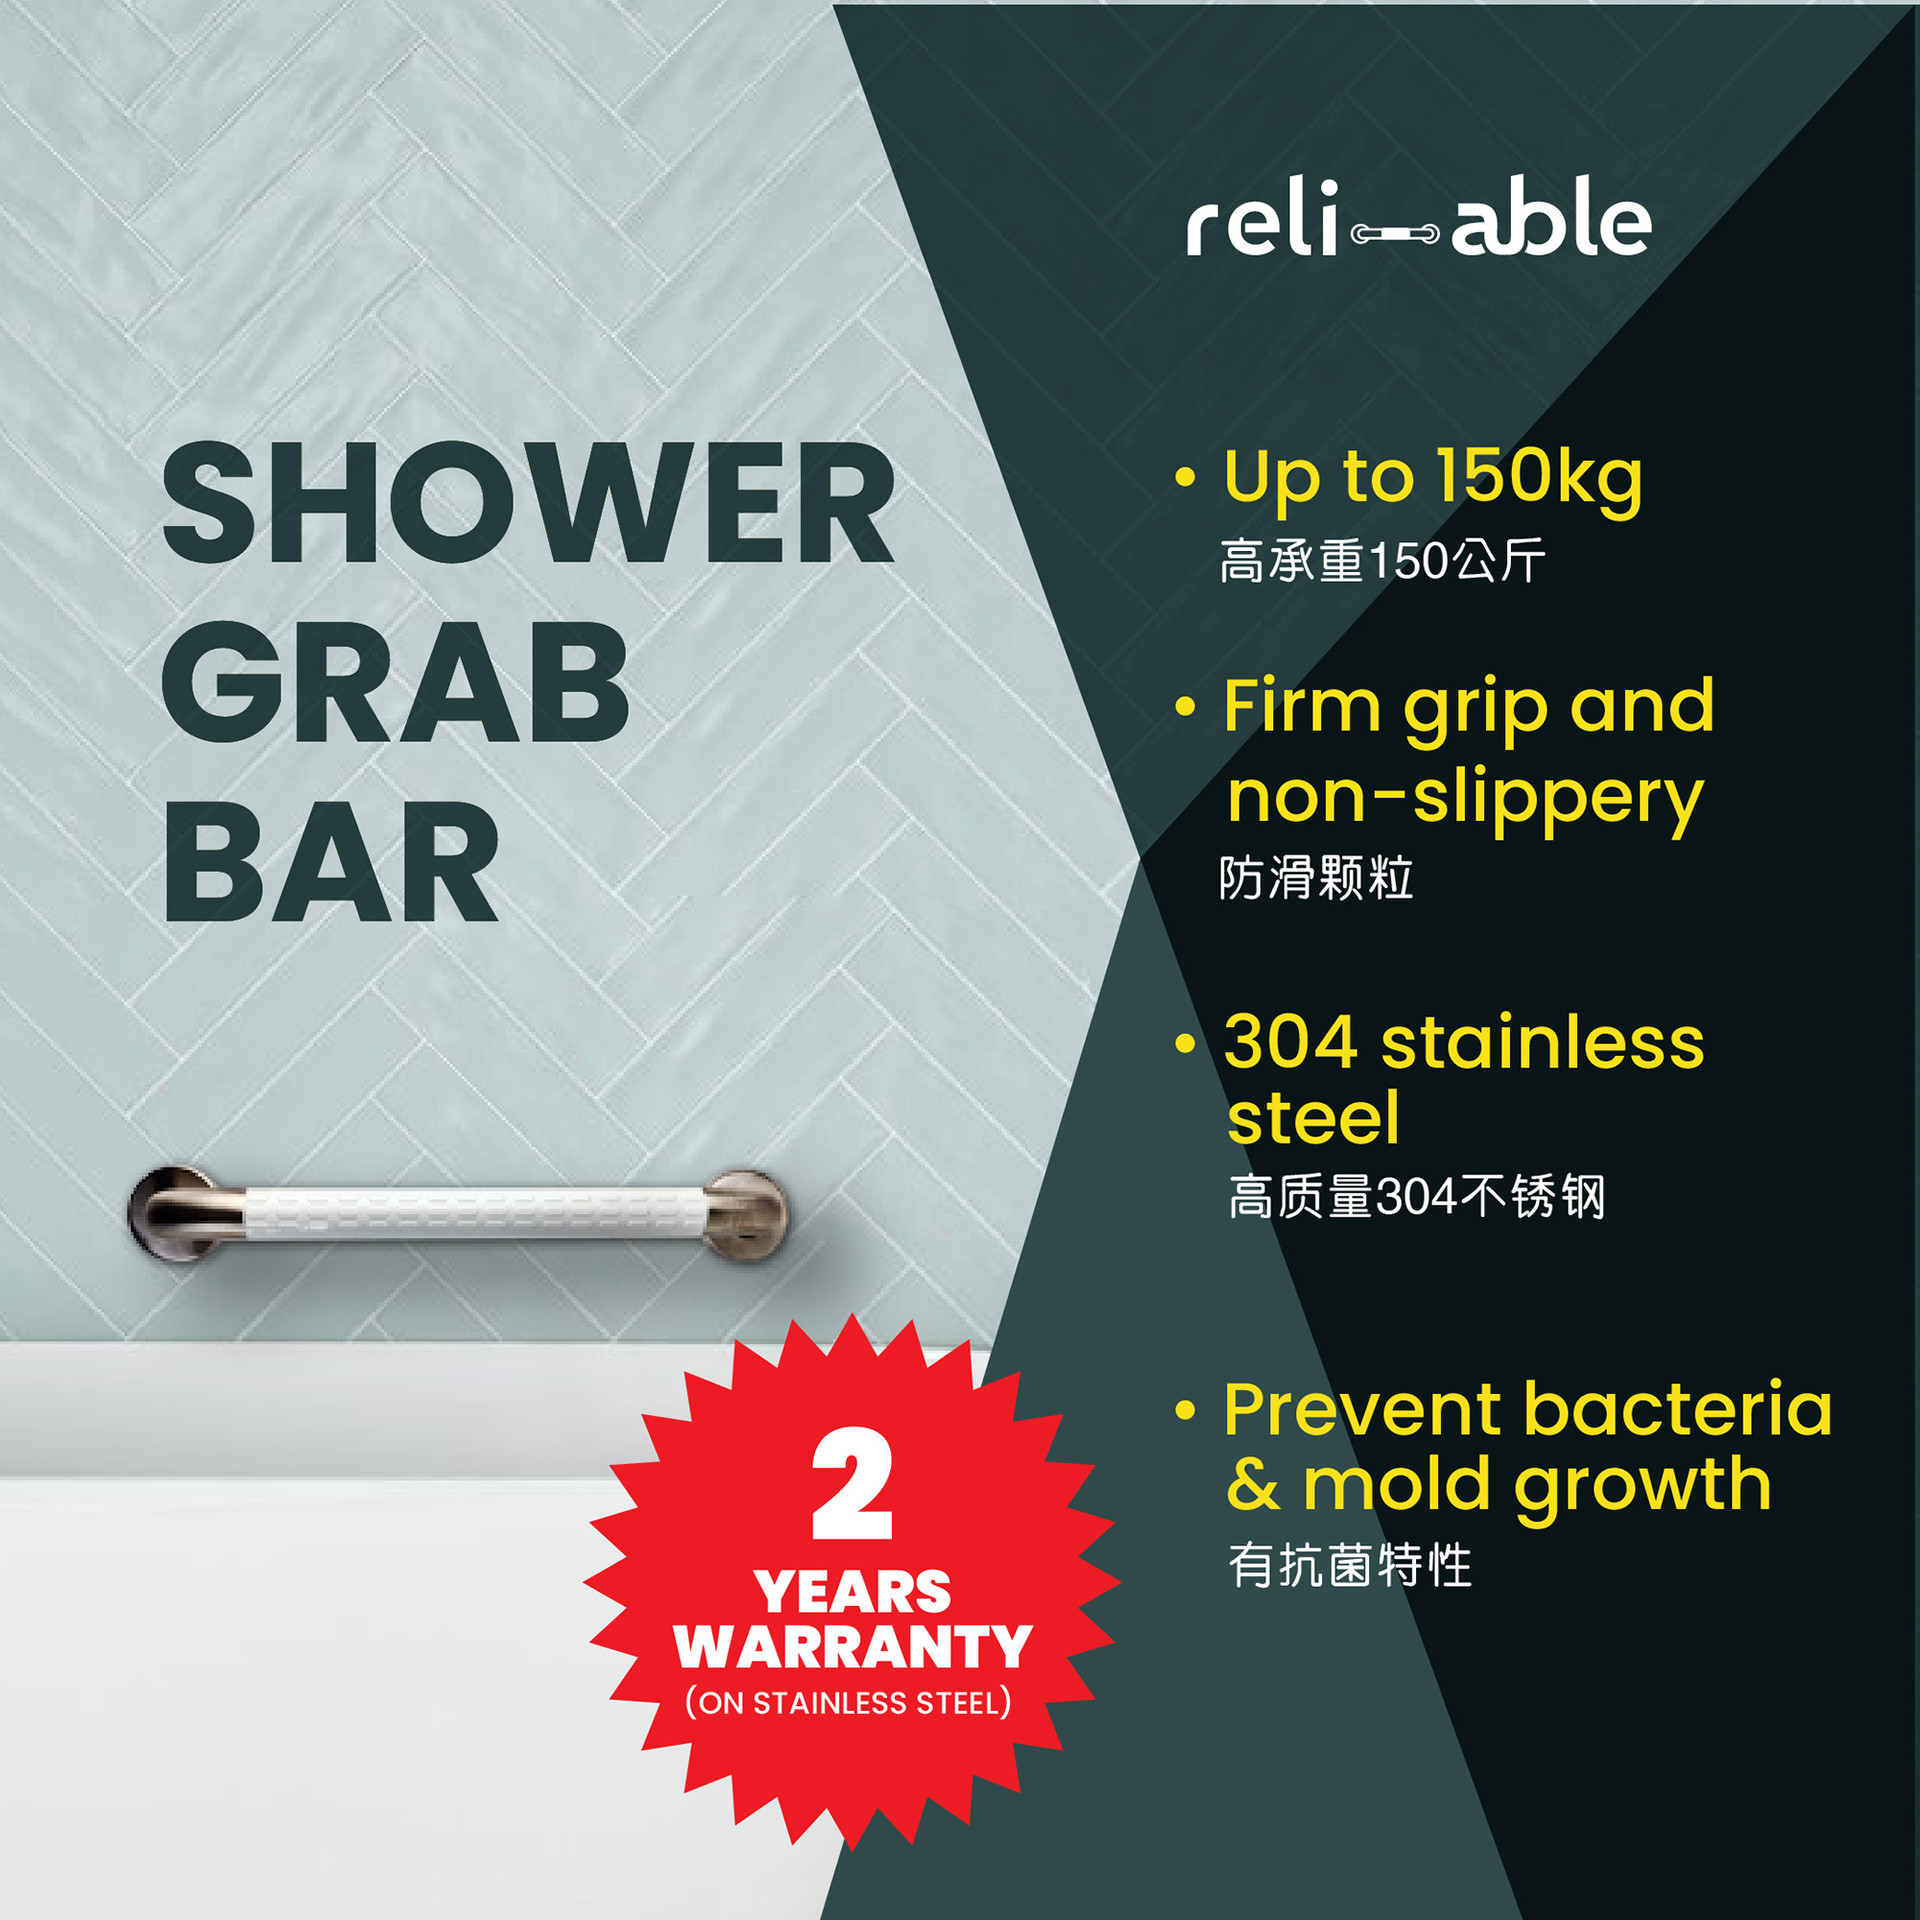 Shower Grab bar-POSM-08.jpg